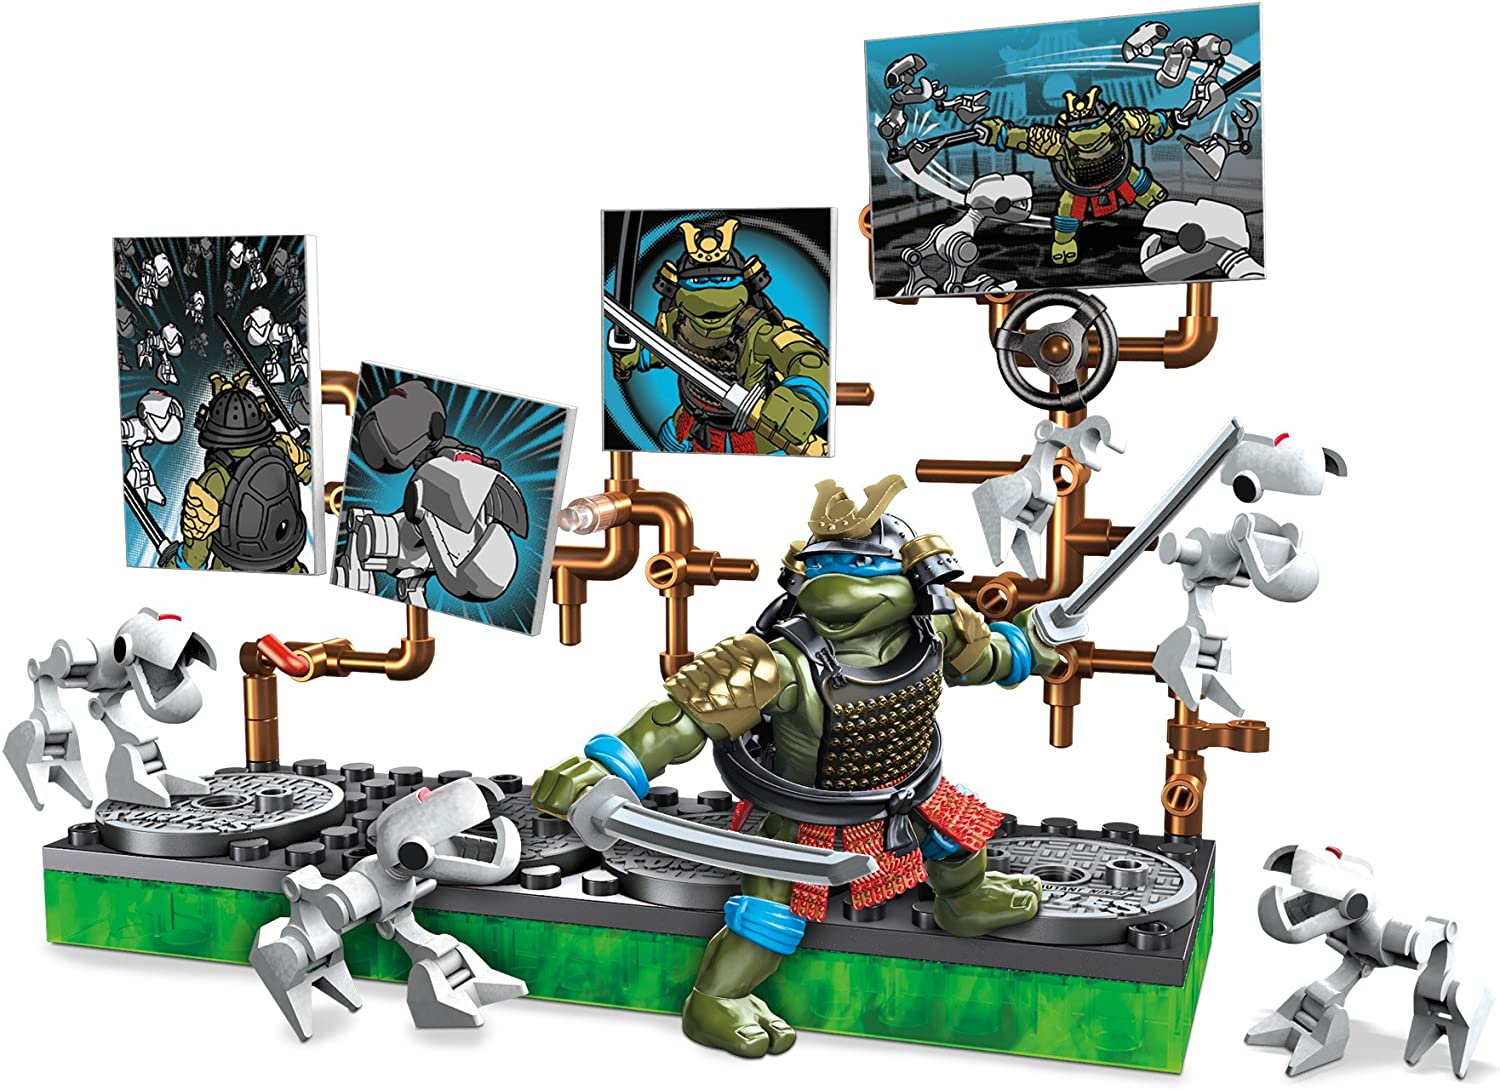 Amazon.com: Mega construx Teenage Mutant Ninja Turtles ...